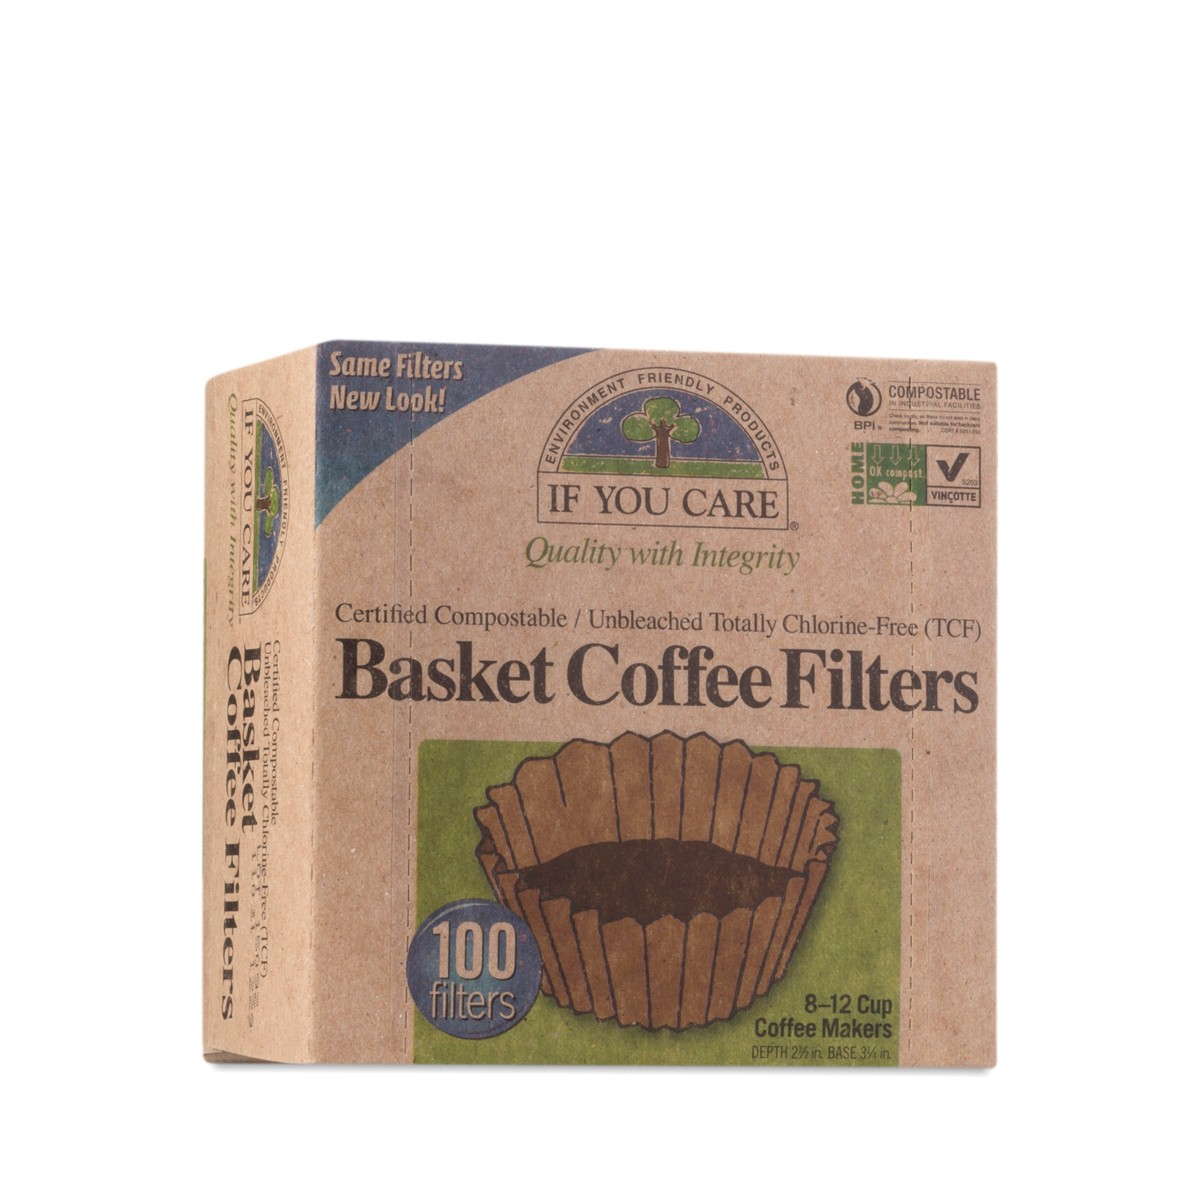 Biodegradable coffee filters